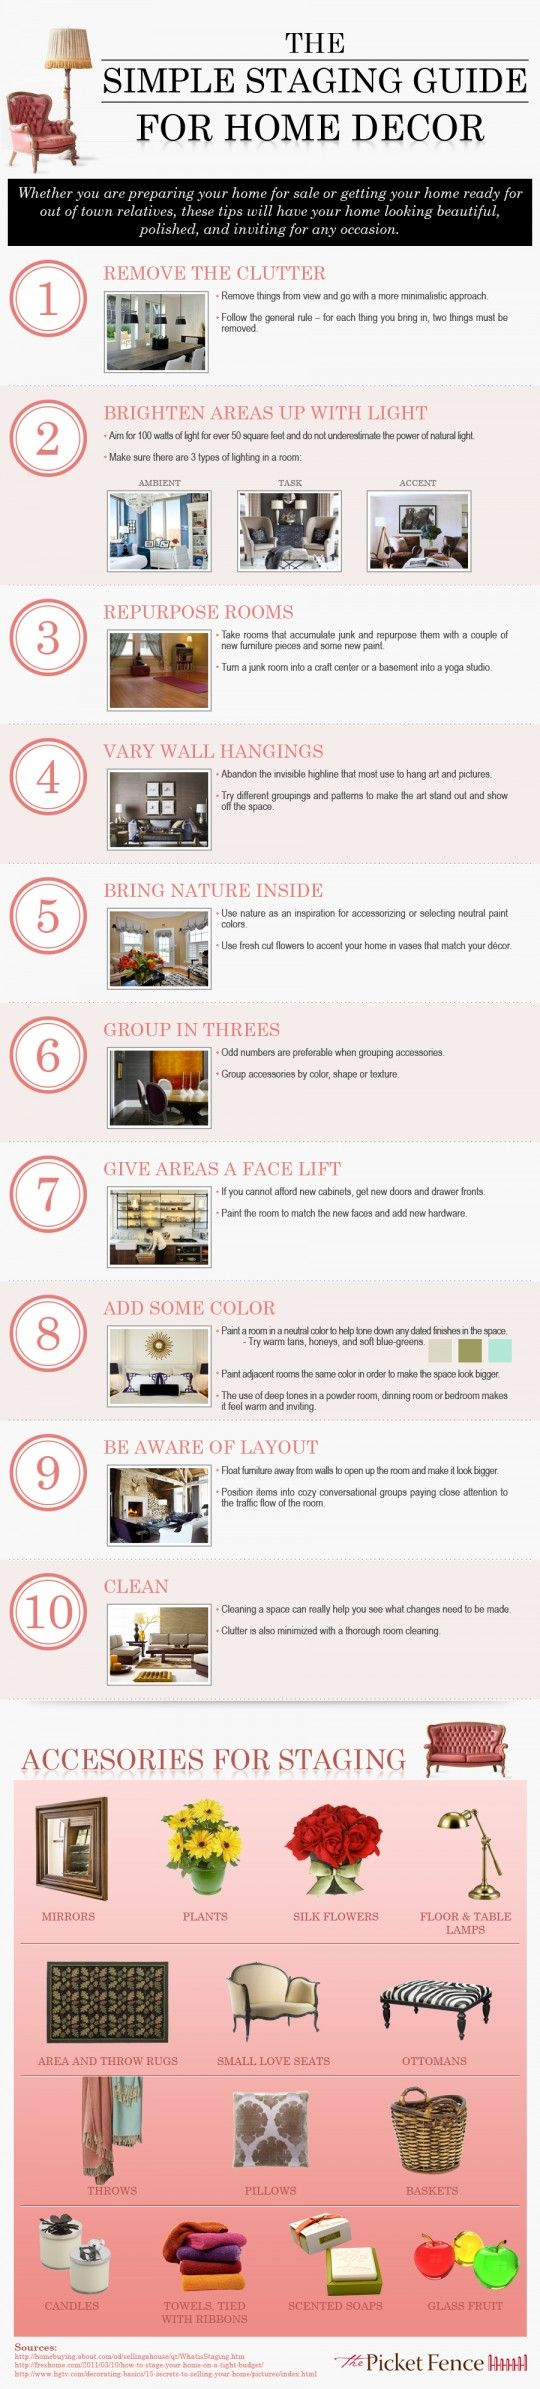 best decor tips images on pinterest decorating tips home